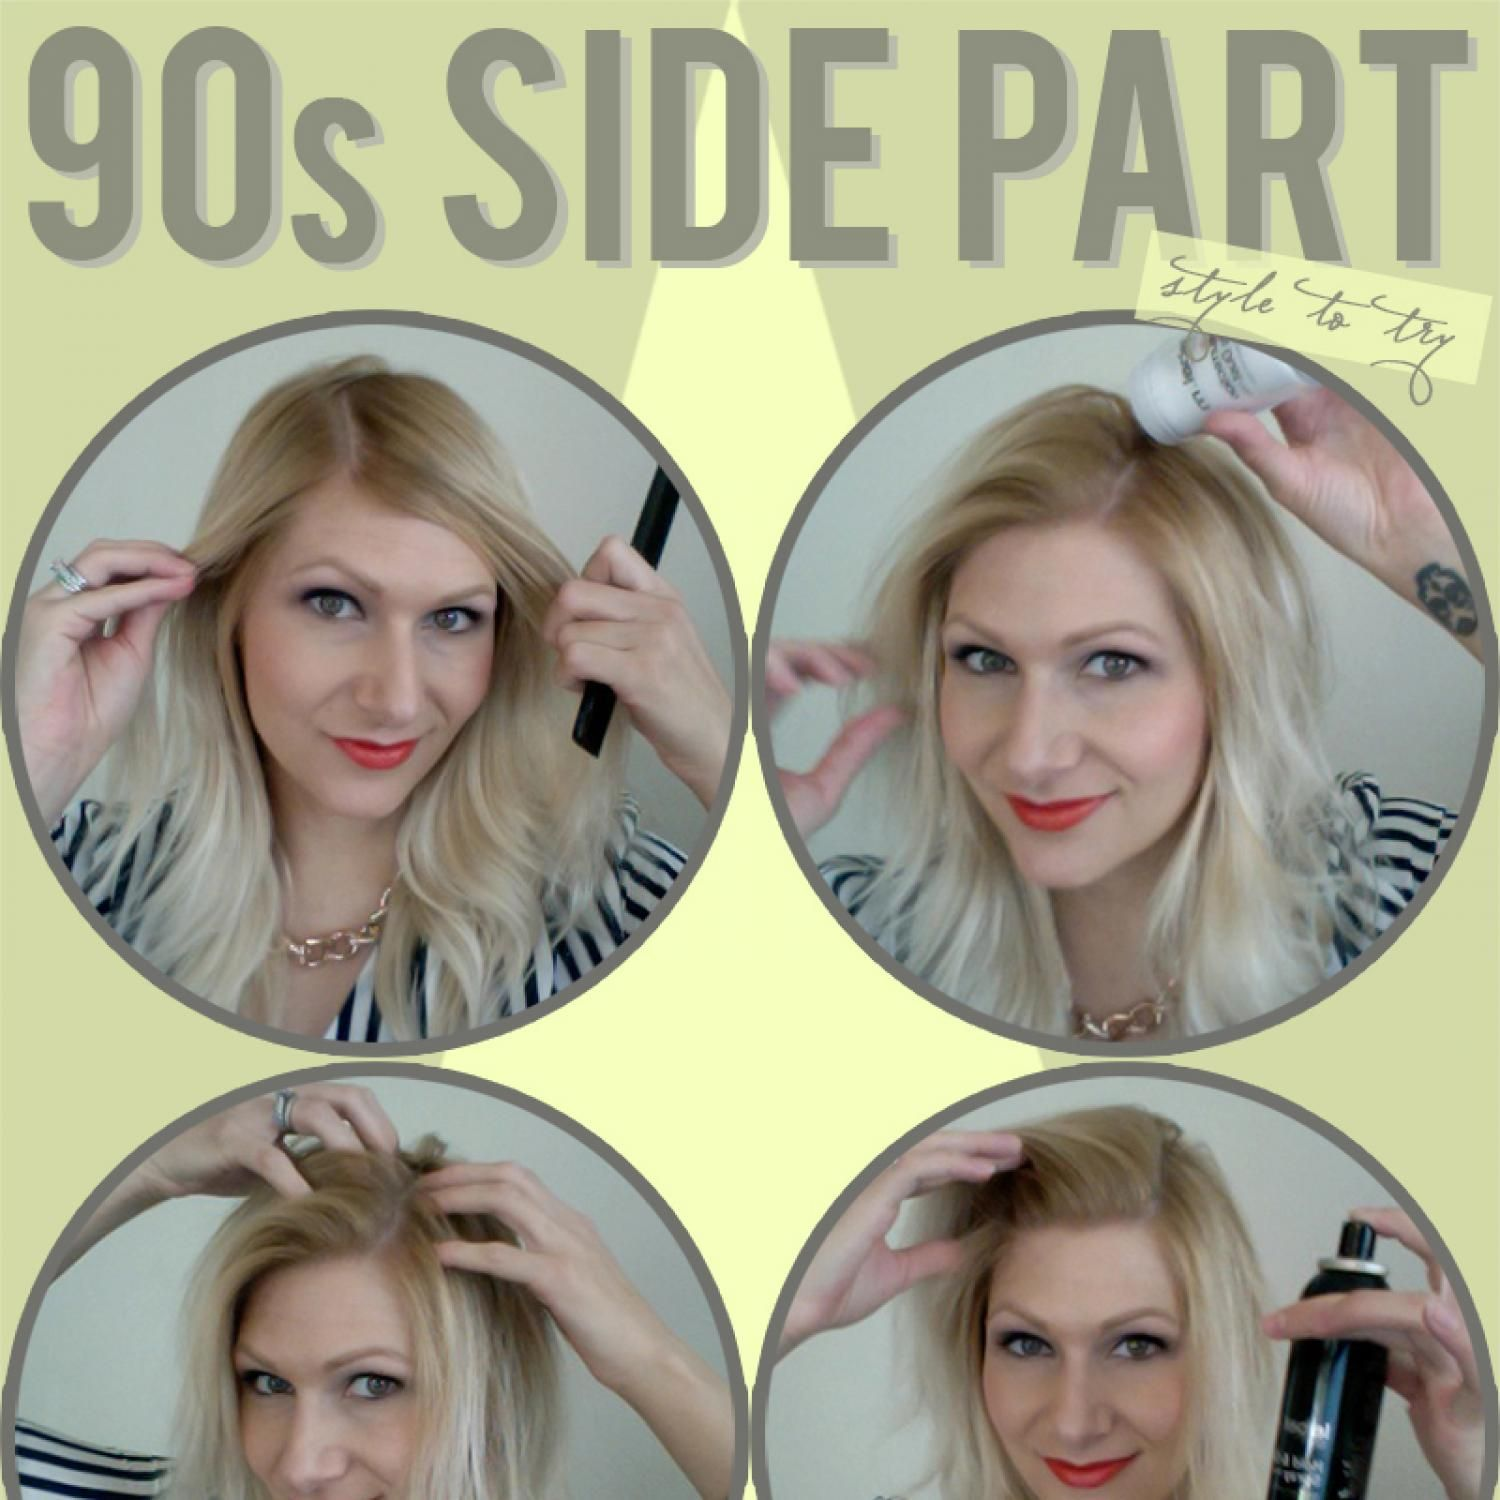 Rock It Pulling Off the '90s Side Part 90s hairstyles